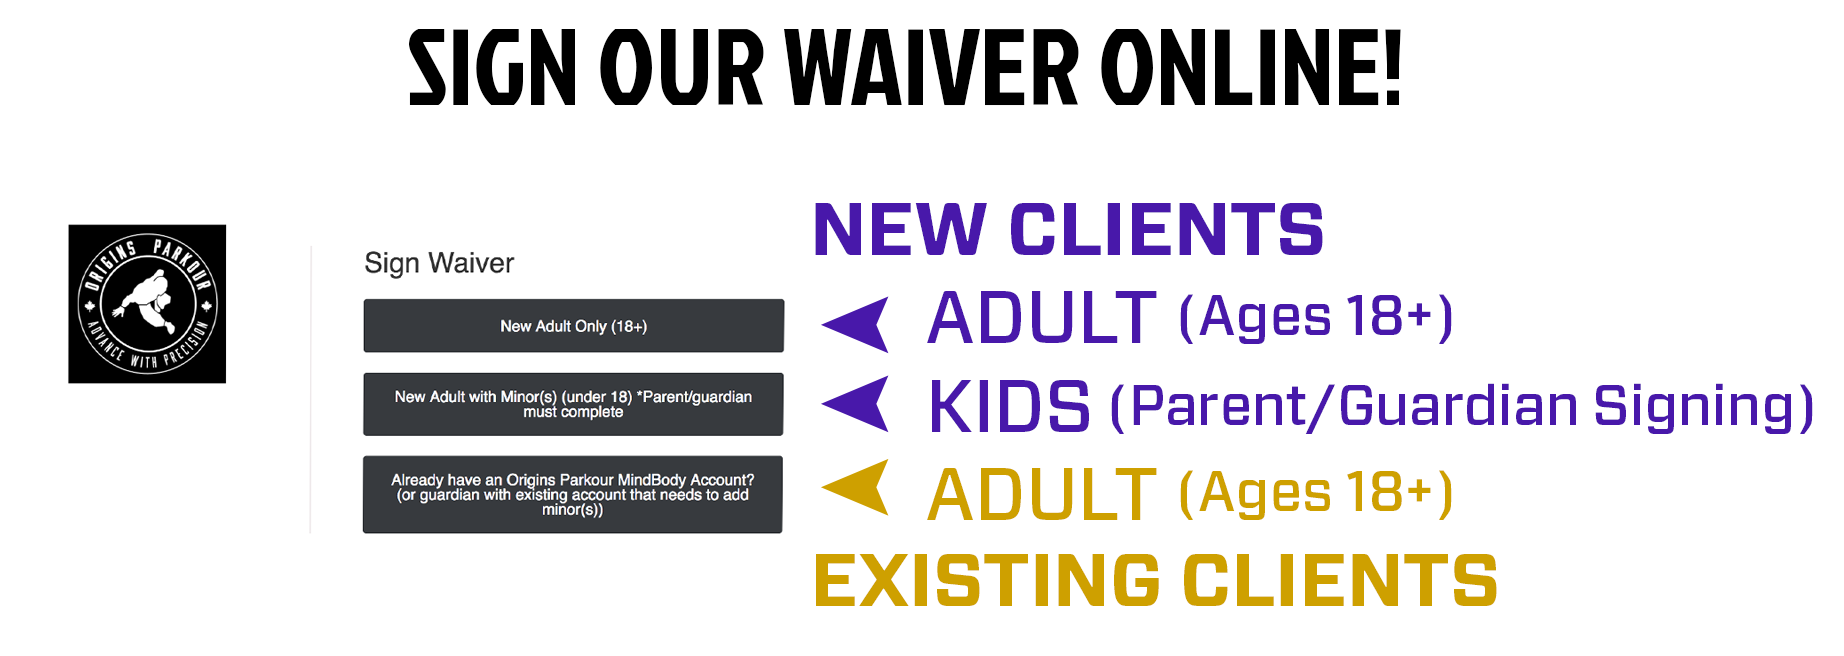 howtowaiver